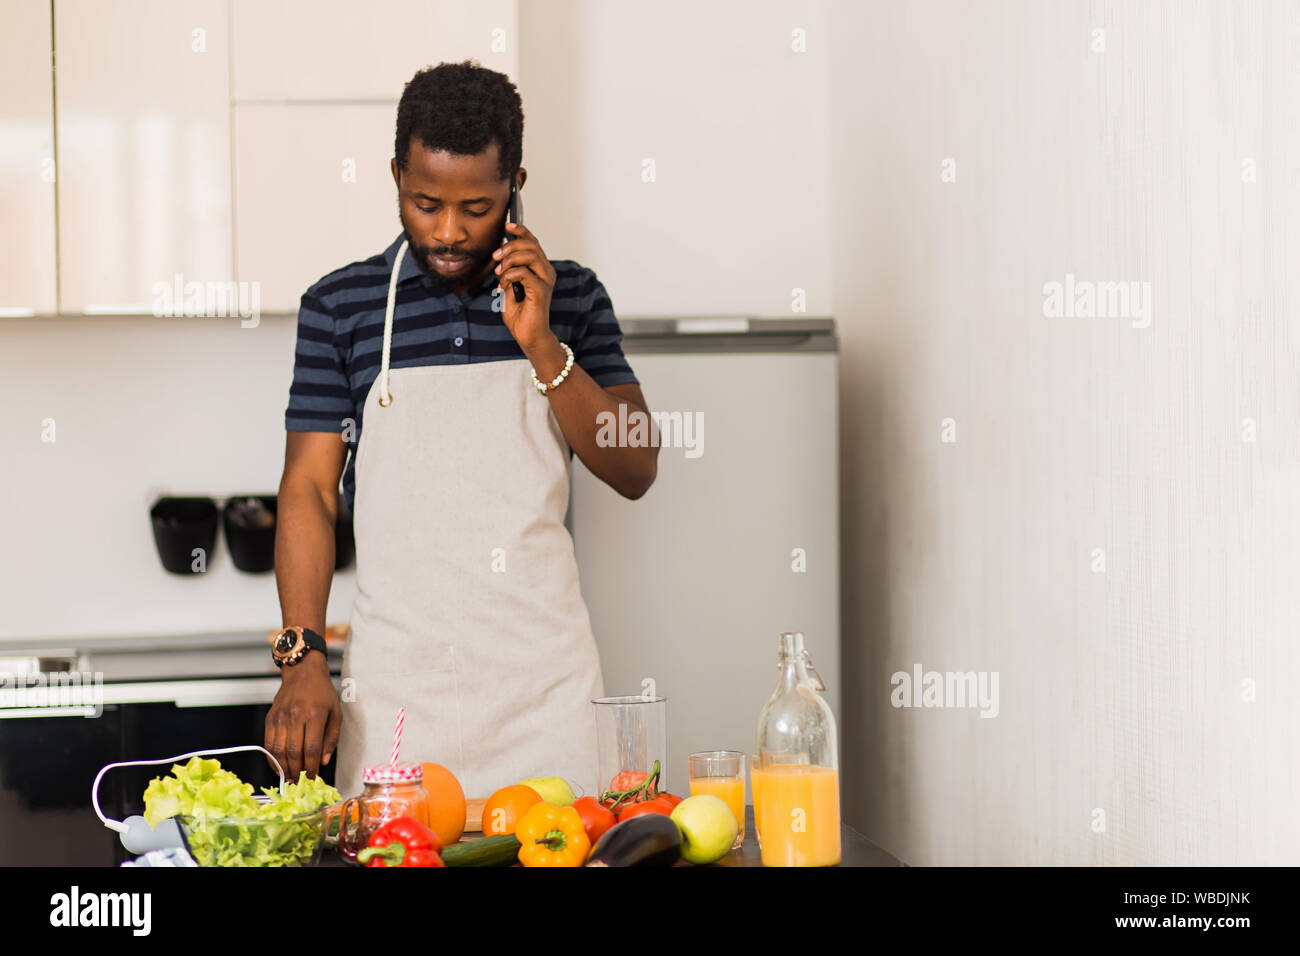 Portrait of serious young unshaven african man wearing apron standing in the white kitchen talking on mobile phone. Closeup shot. Cooking, communicati Stock Photo